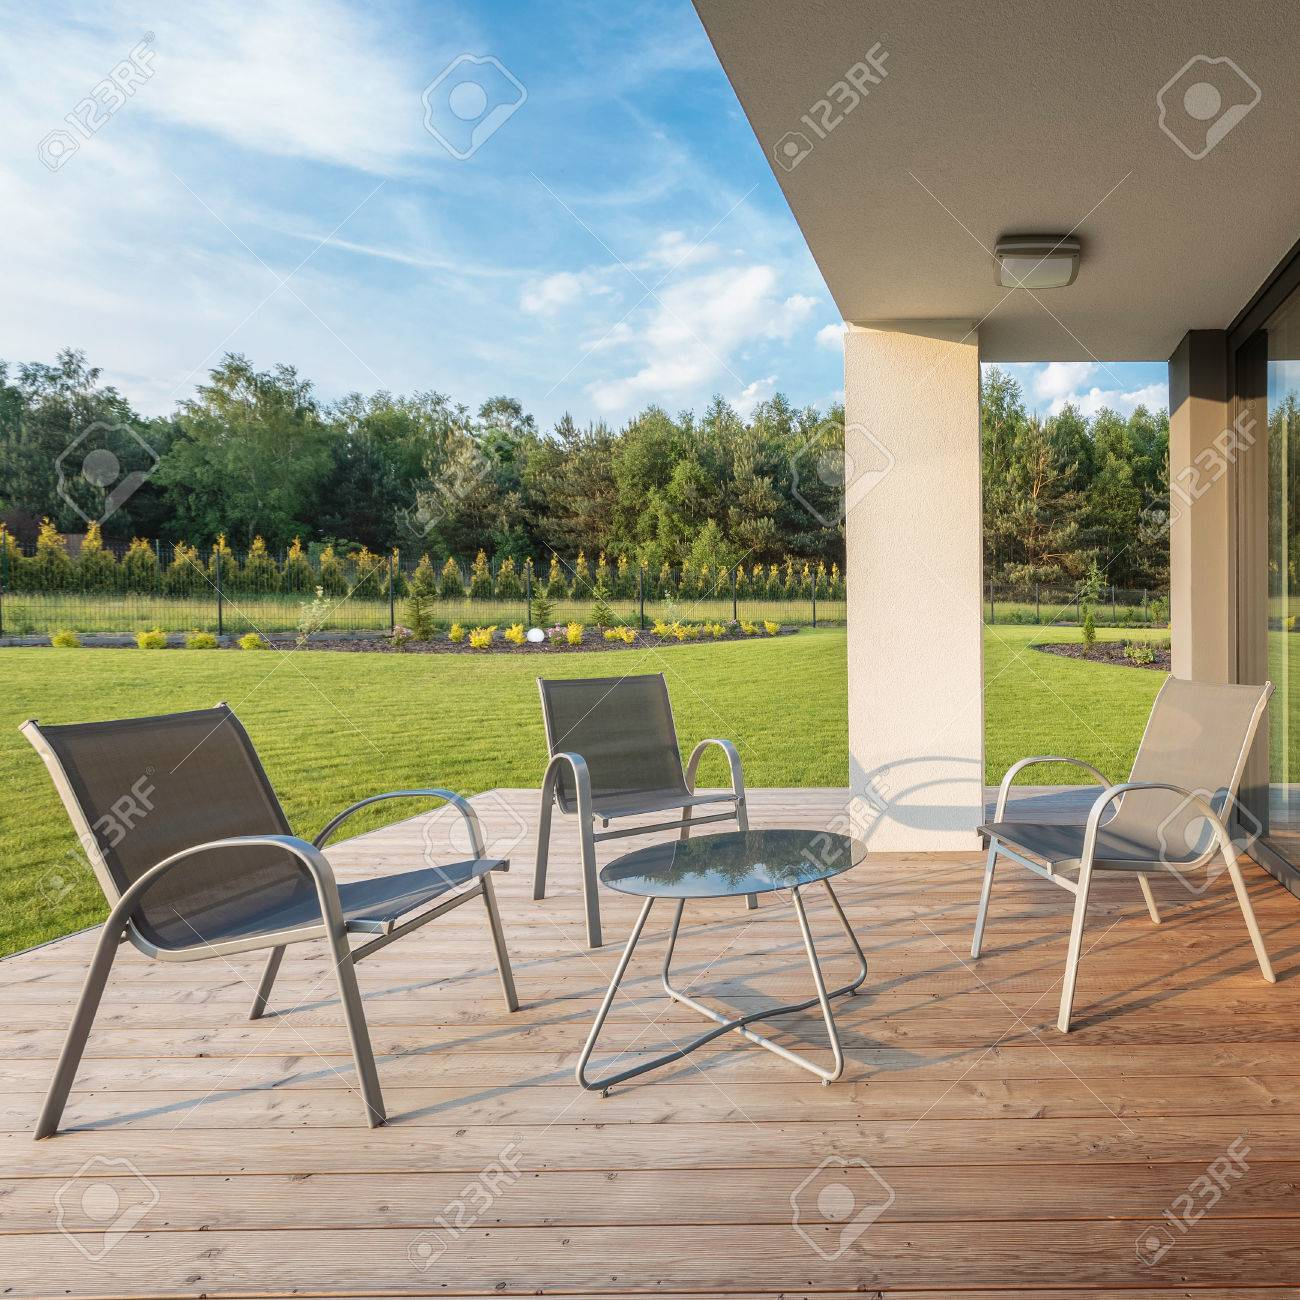 Holzboden Terrasse Stock Photo